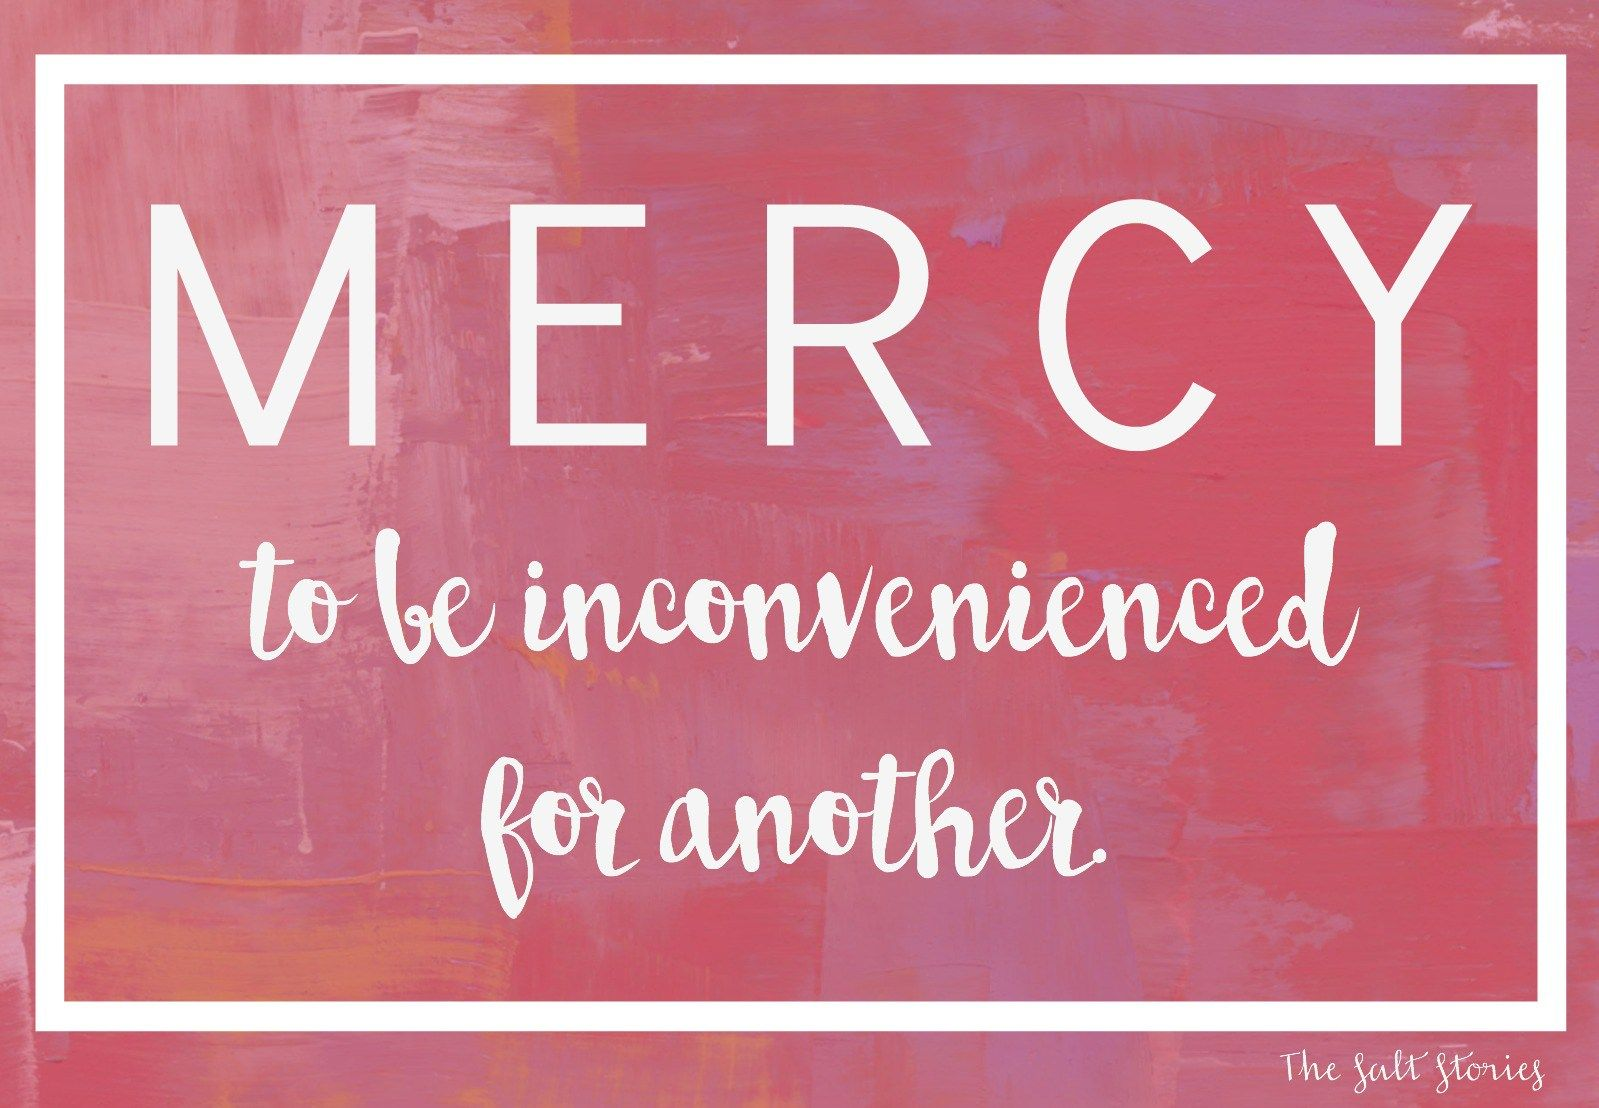 the salt stories: mercy and inconvenience- mercy definition | year